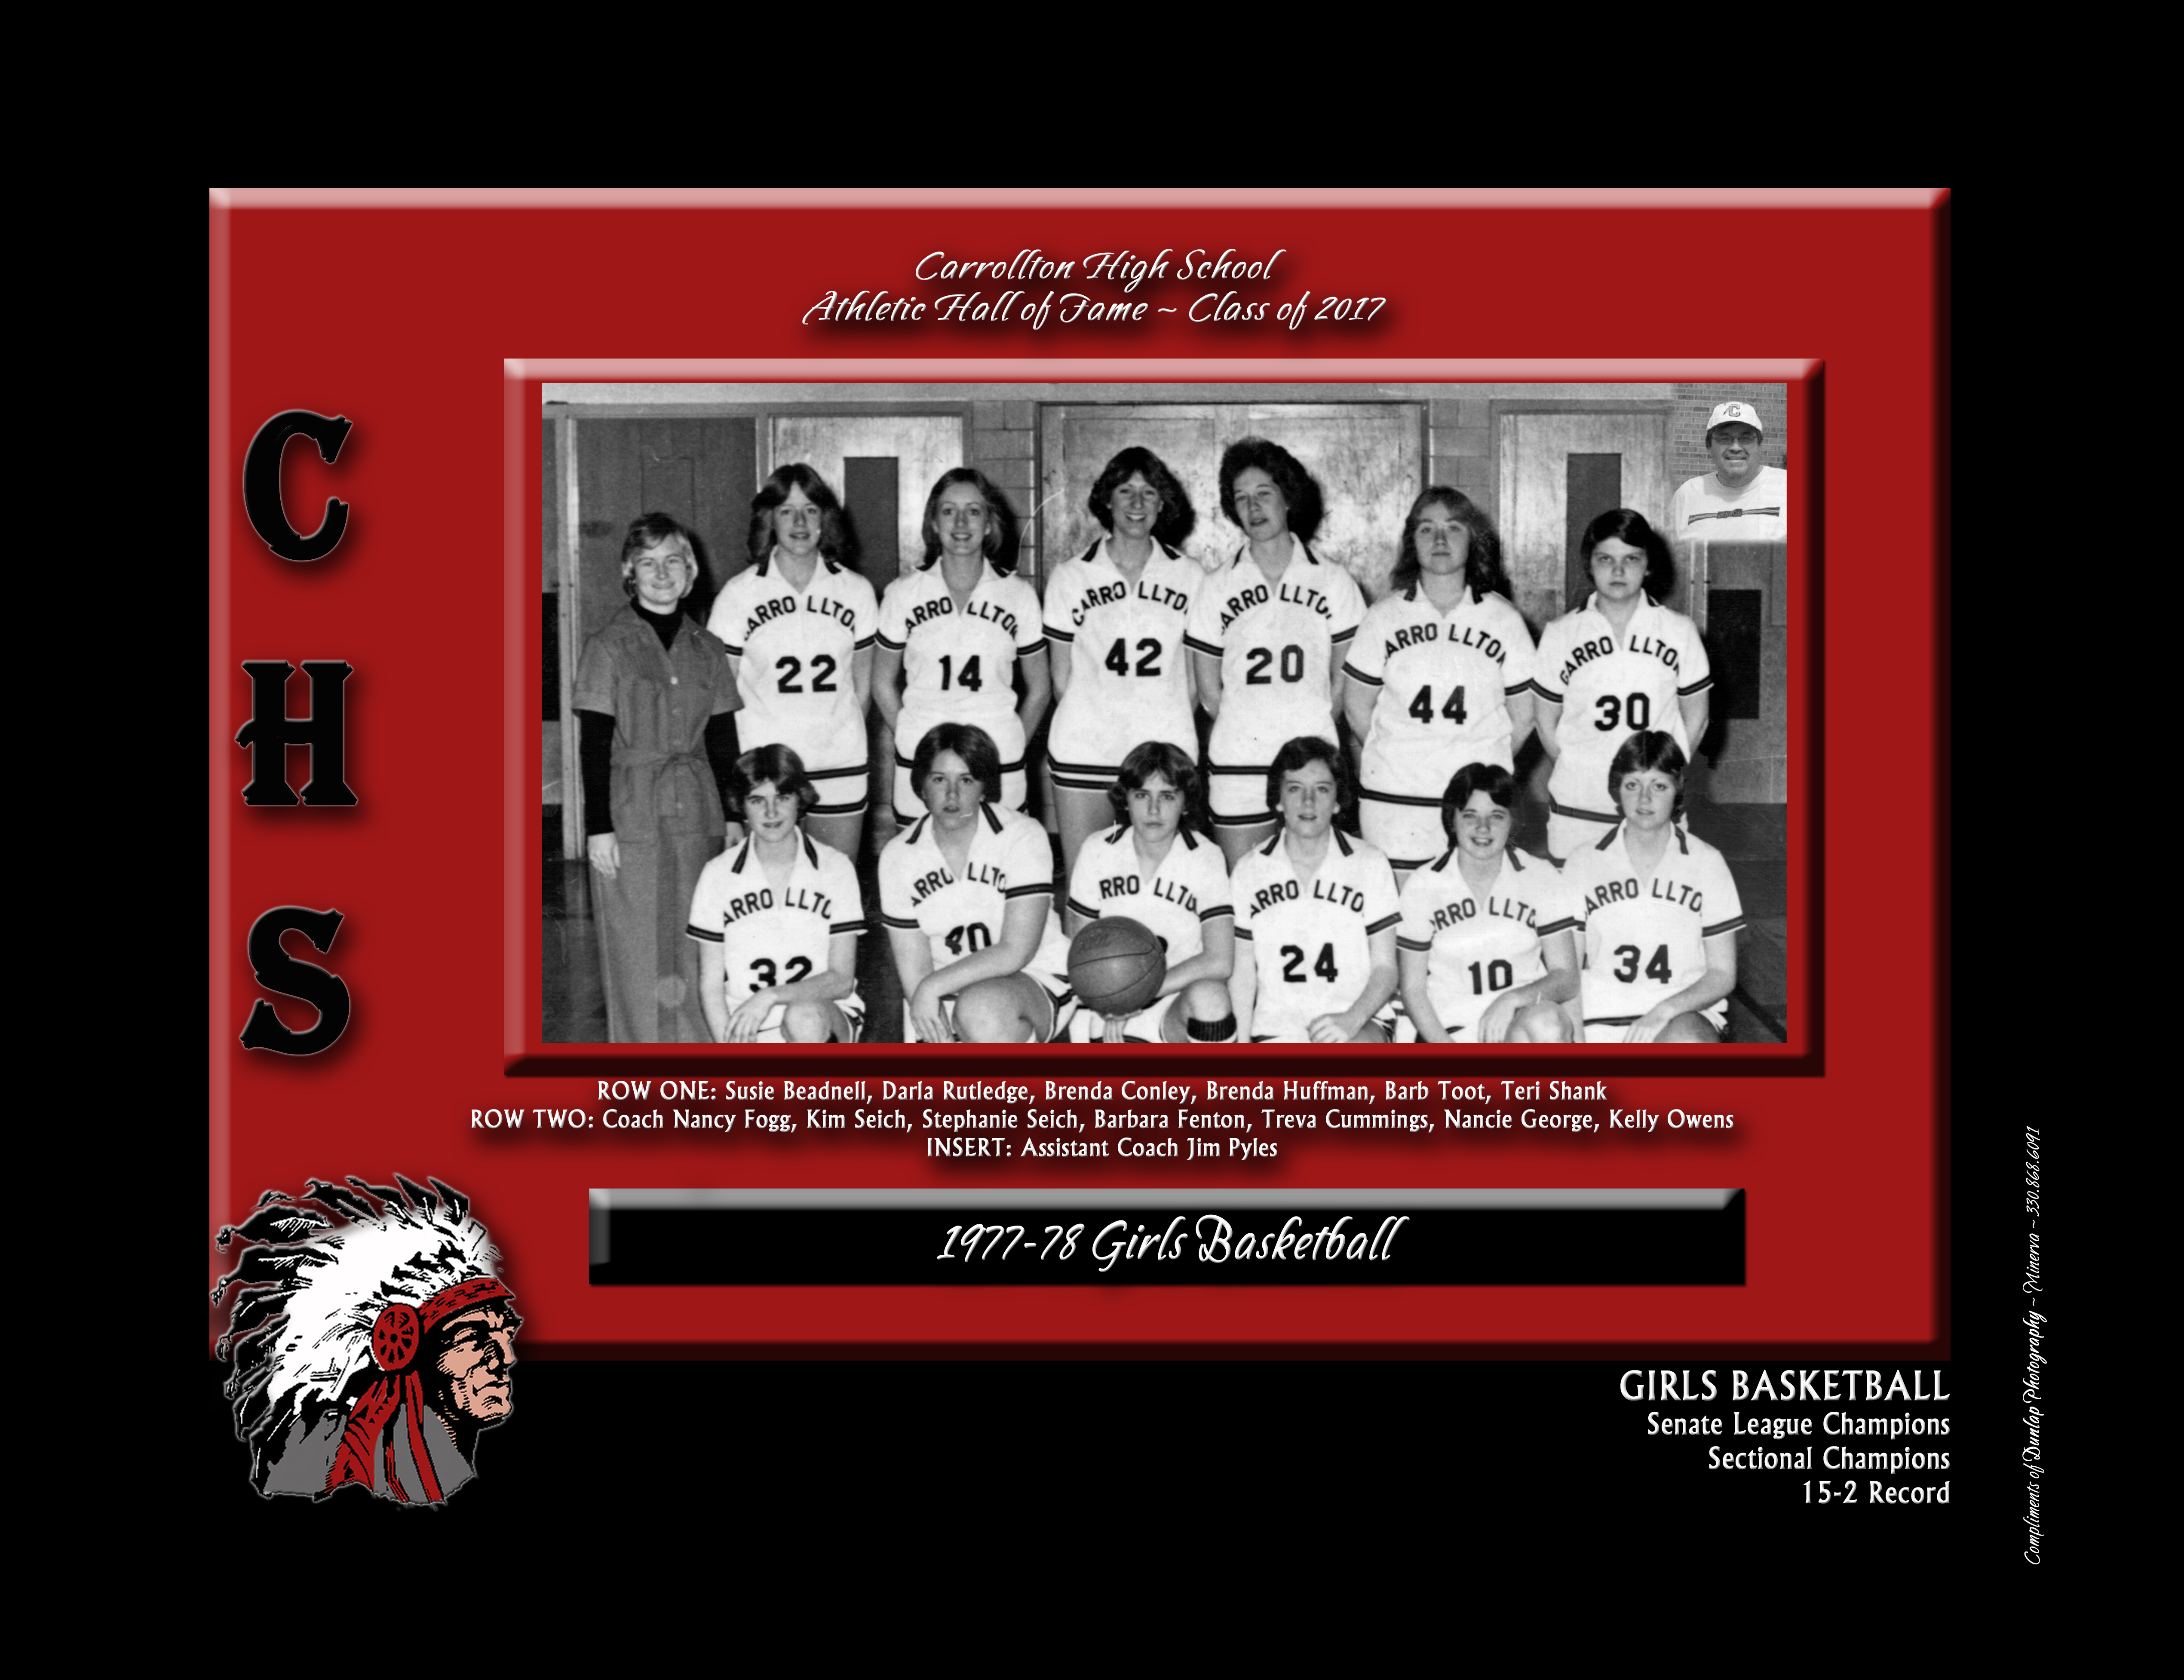 Athletic hall of fame inductees carrollton exempted village schools 1977 78 girls basketball team jeuxipadfo Gallery